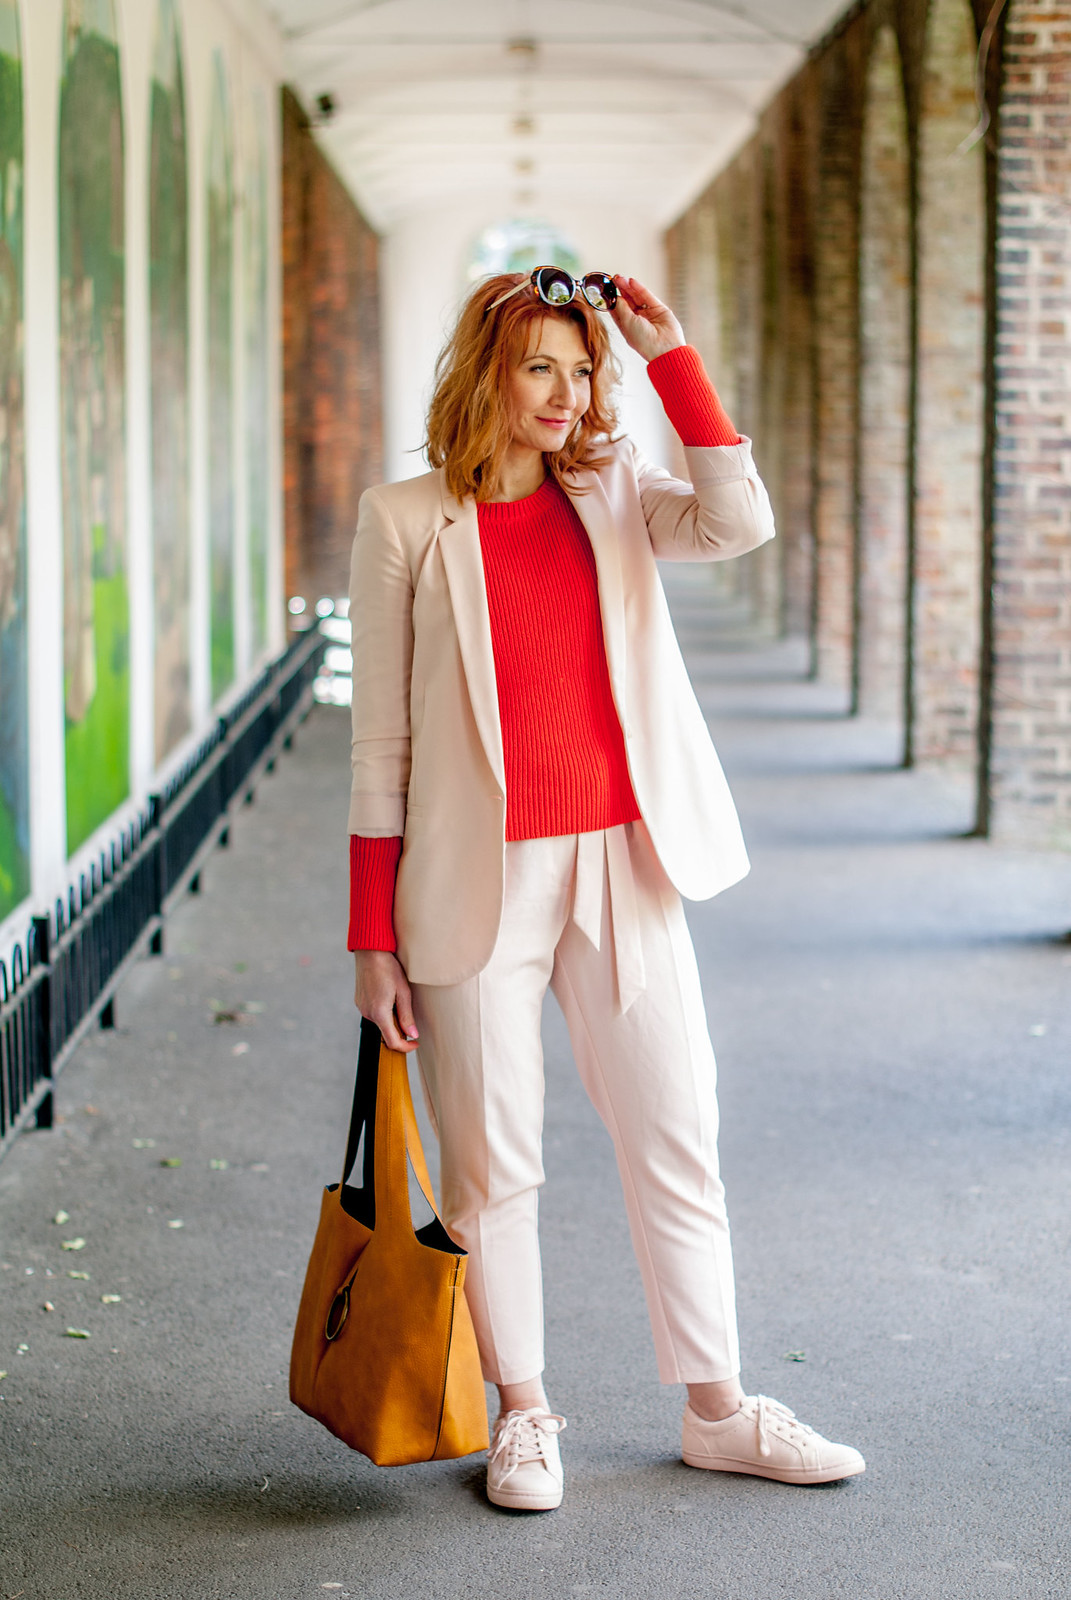 Bright spring/summer outfit: Blush pink trouser (pants) suit matching sneakers tomato orange red sweater yellow ochre suede hobo bag tortoiseshell sunglasses | Not Dressed As Lamb, over 40 style